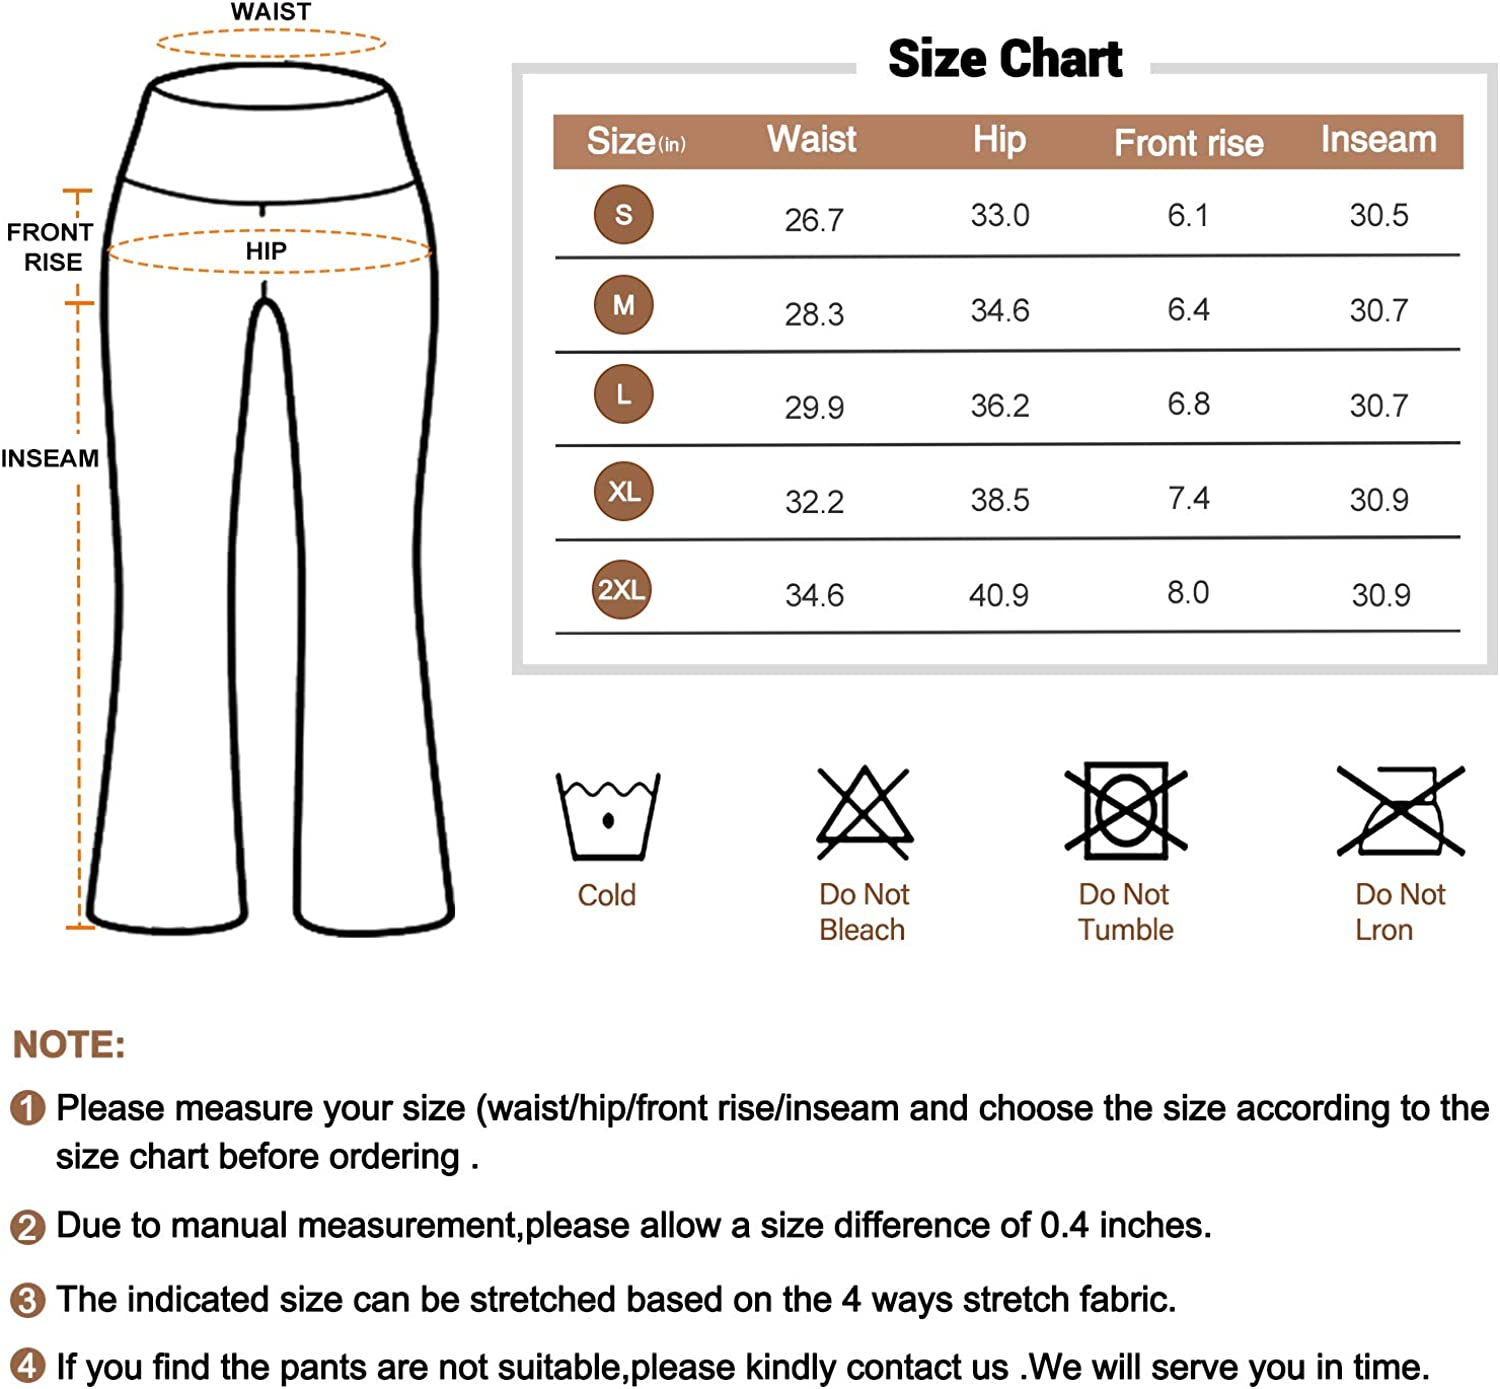 HISKYWIN Bootcut Yoga Pants with Pockets for Women High Waist Workout Bootleg Pants Tummy Control 4 Way Stretch Flare Pants